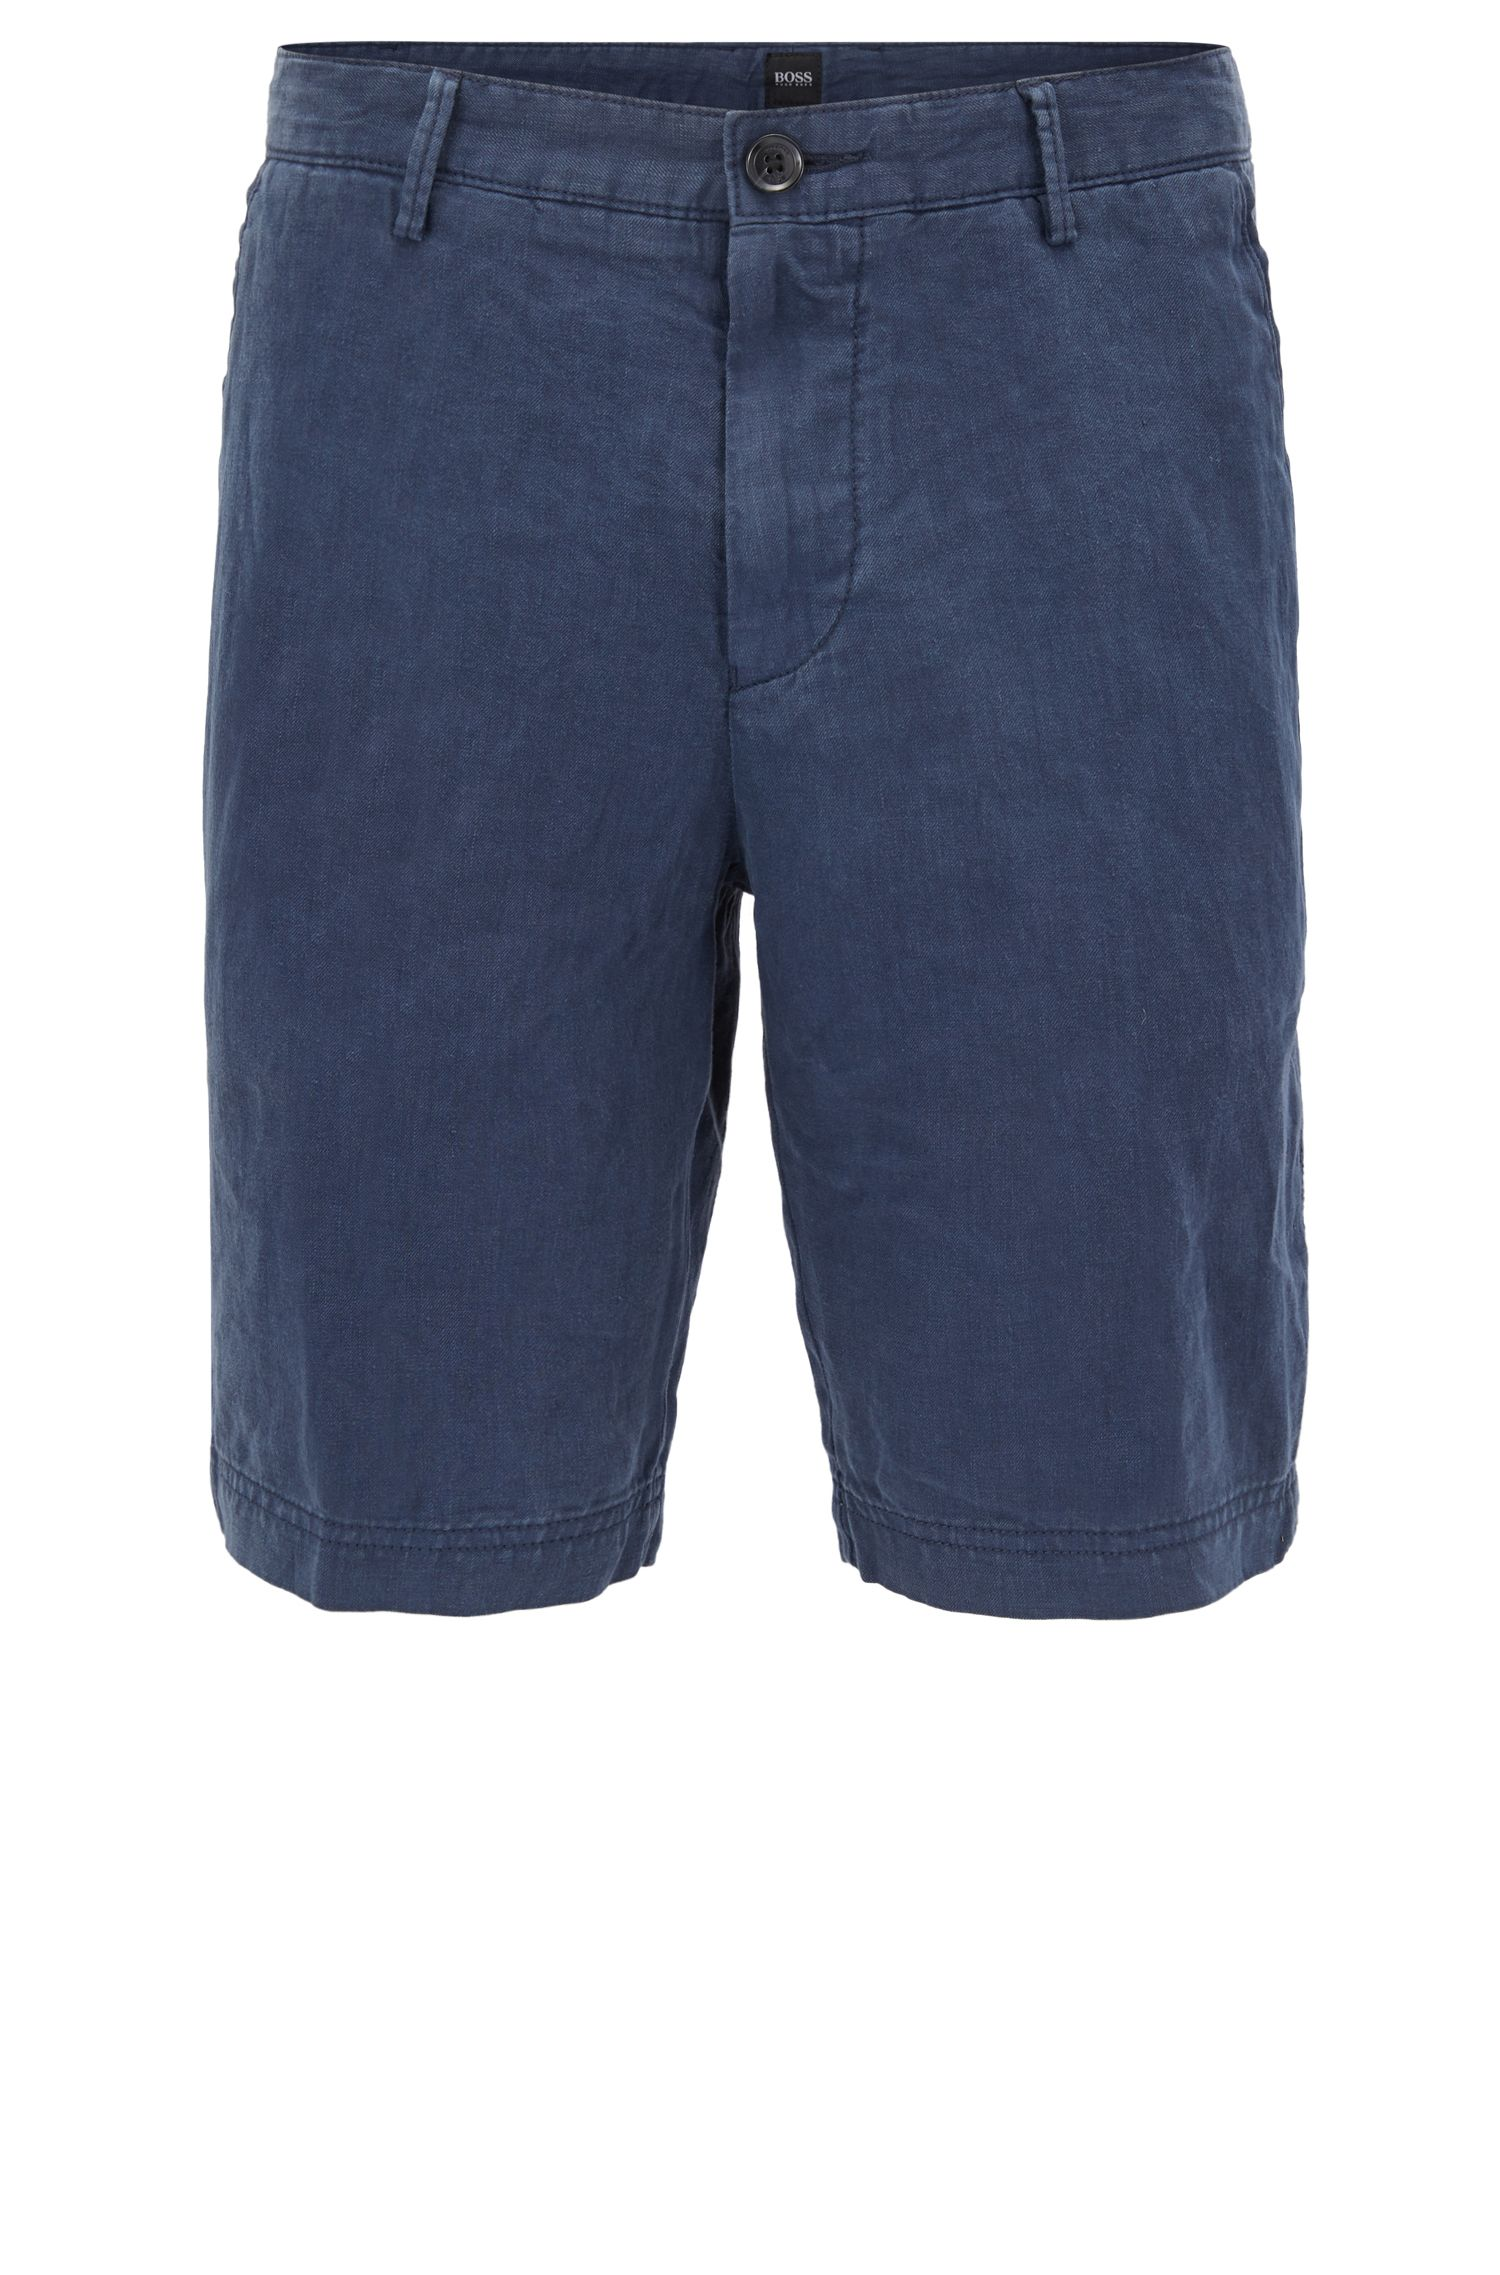 Regular-Fit Shorts aus reinem Leinen, Dunkelblau